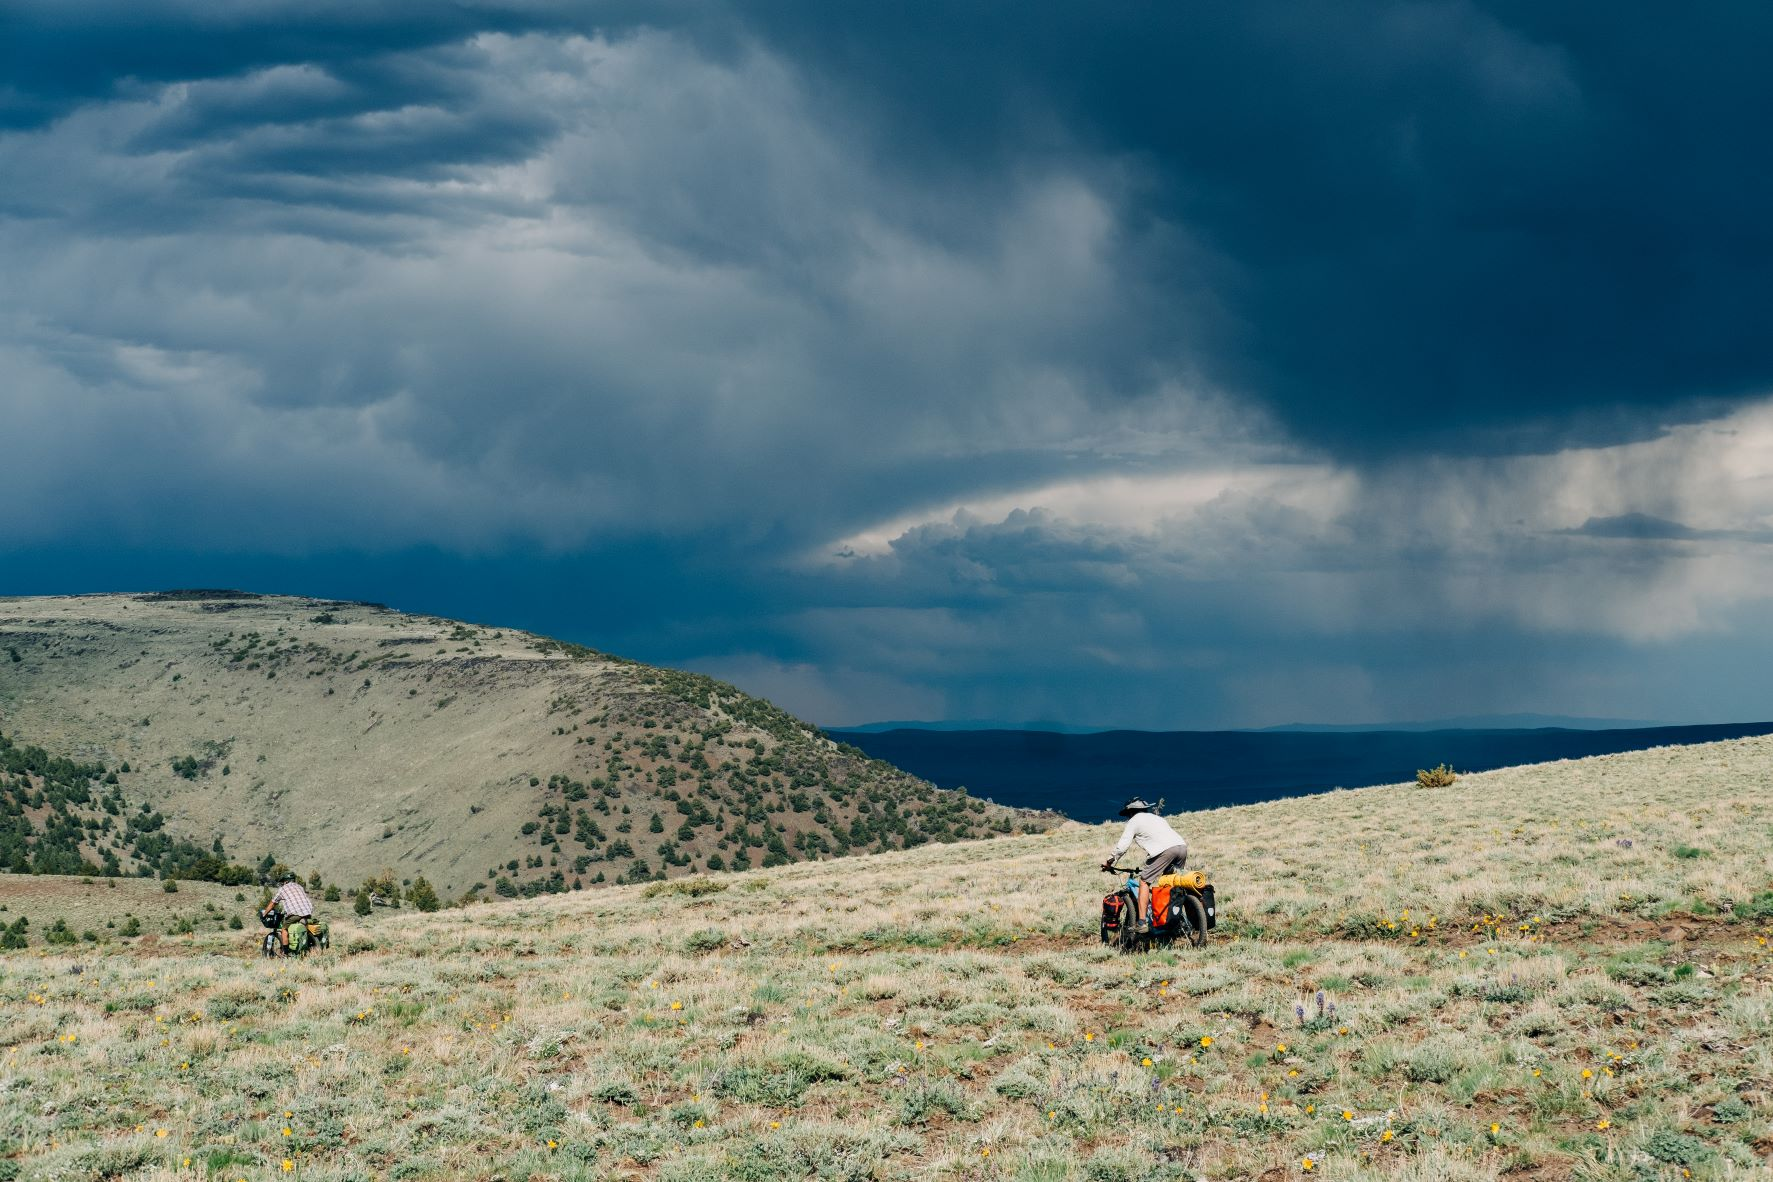 Biking down the east slope of Steens Mountain in Oregon, with dark storm clouds looming in the distance.